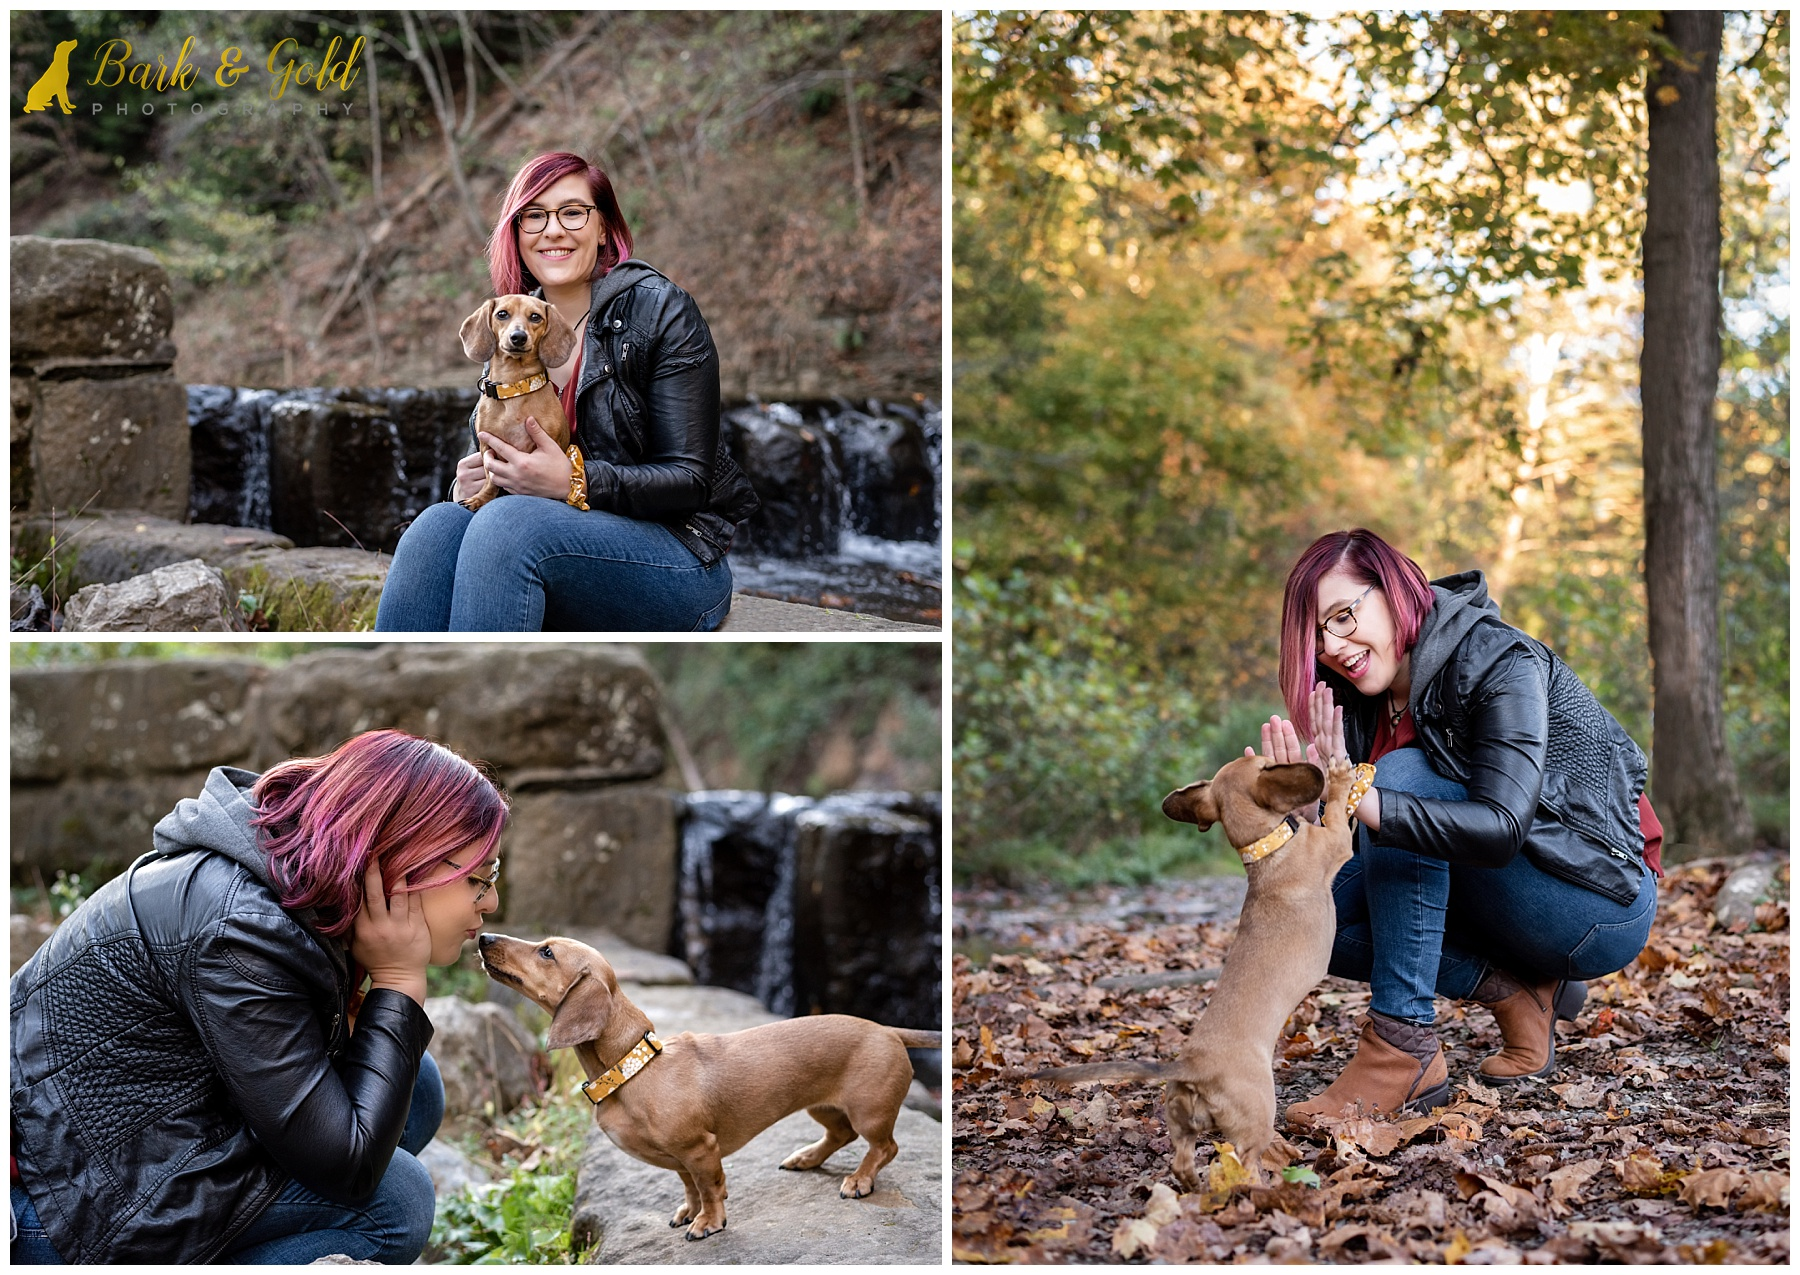 dachshund puppy cuddling and playing with owner at Brady's Run Park